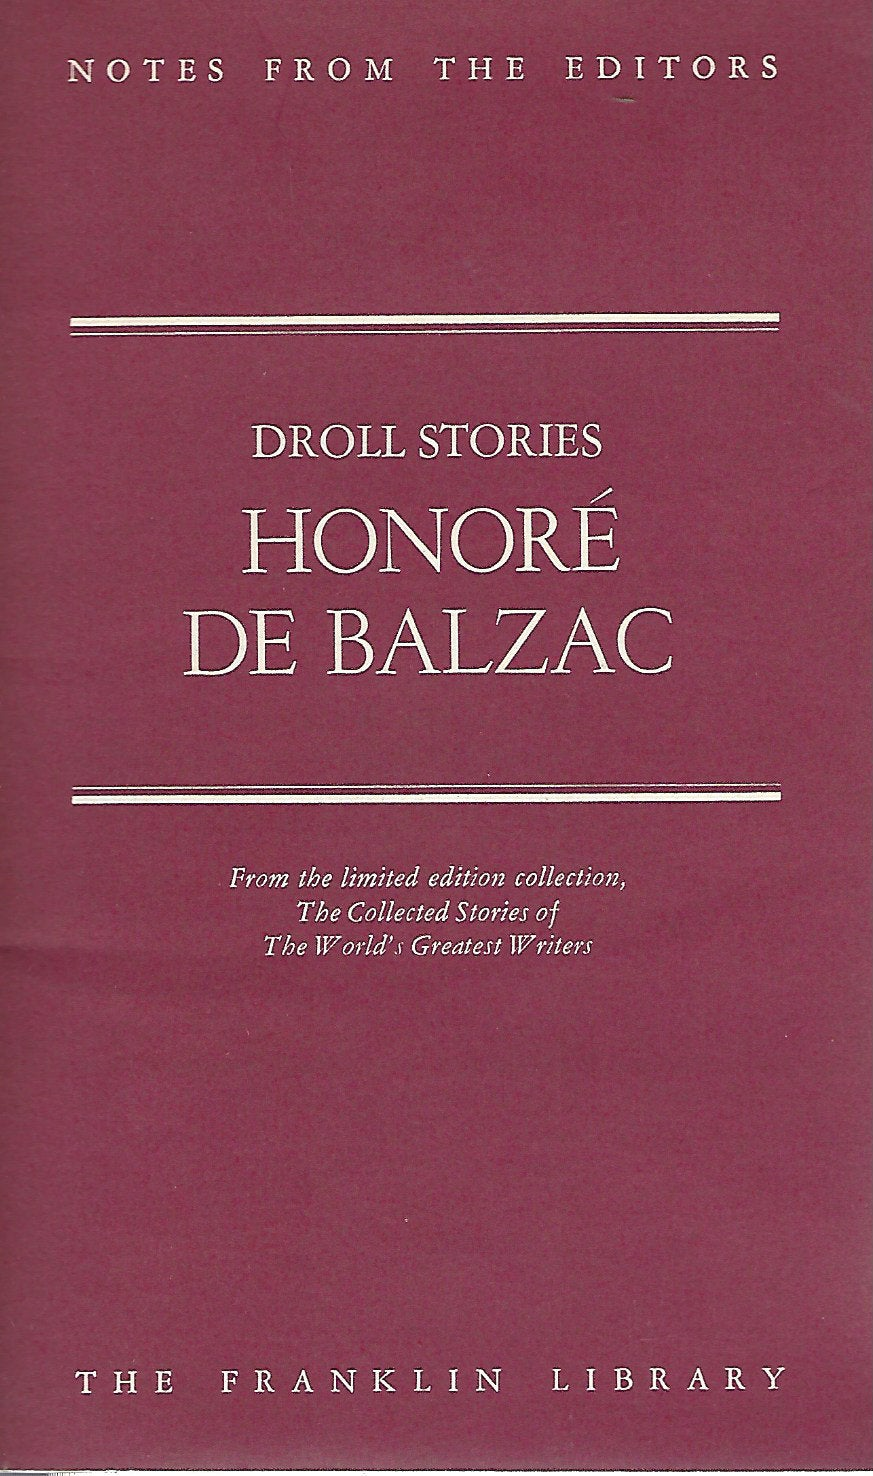 Franklin Library  Notes From the Editors; The Collected Stories of The World's Greatest Writers;  Droll Stories by Honore De Balzac